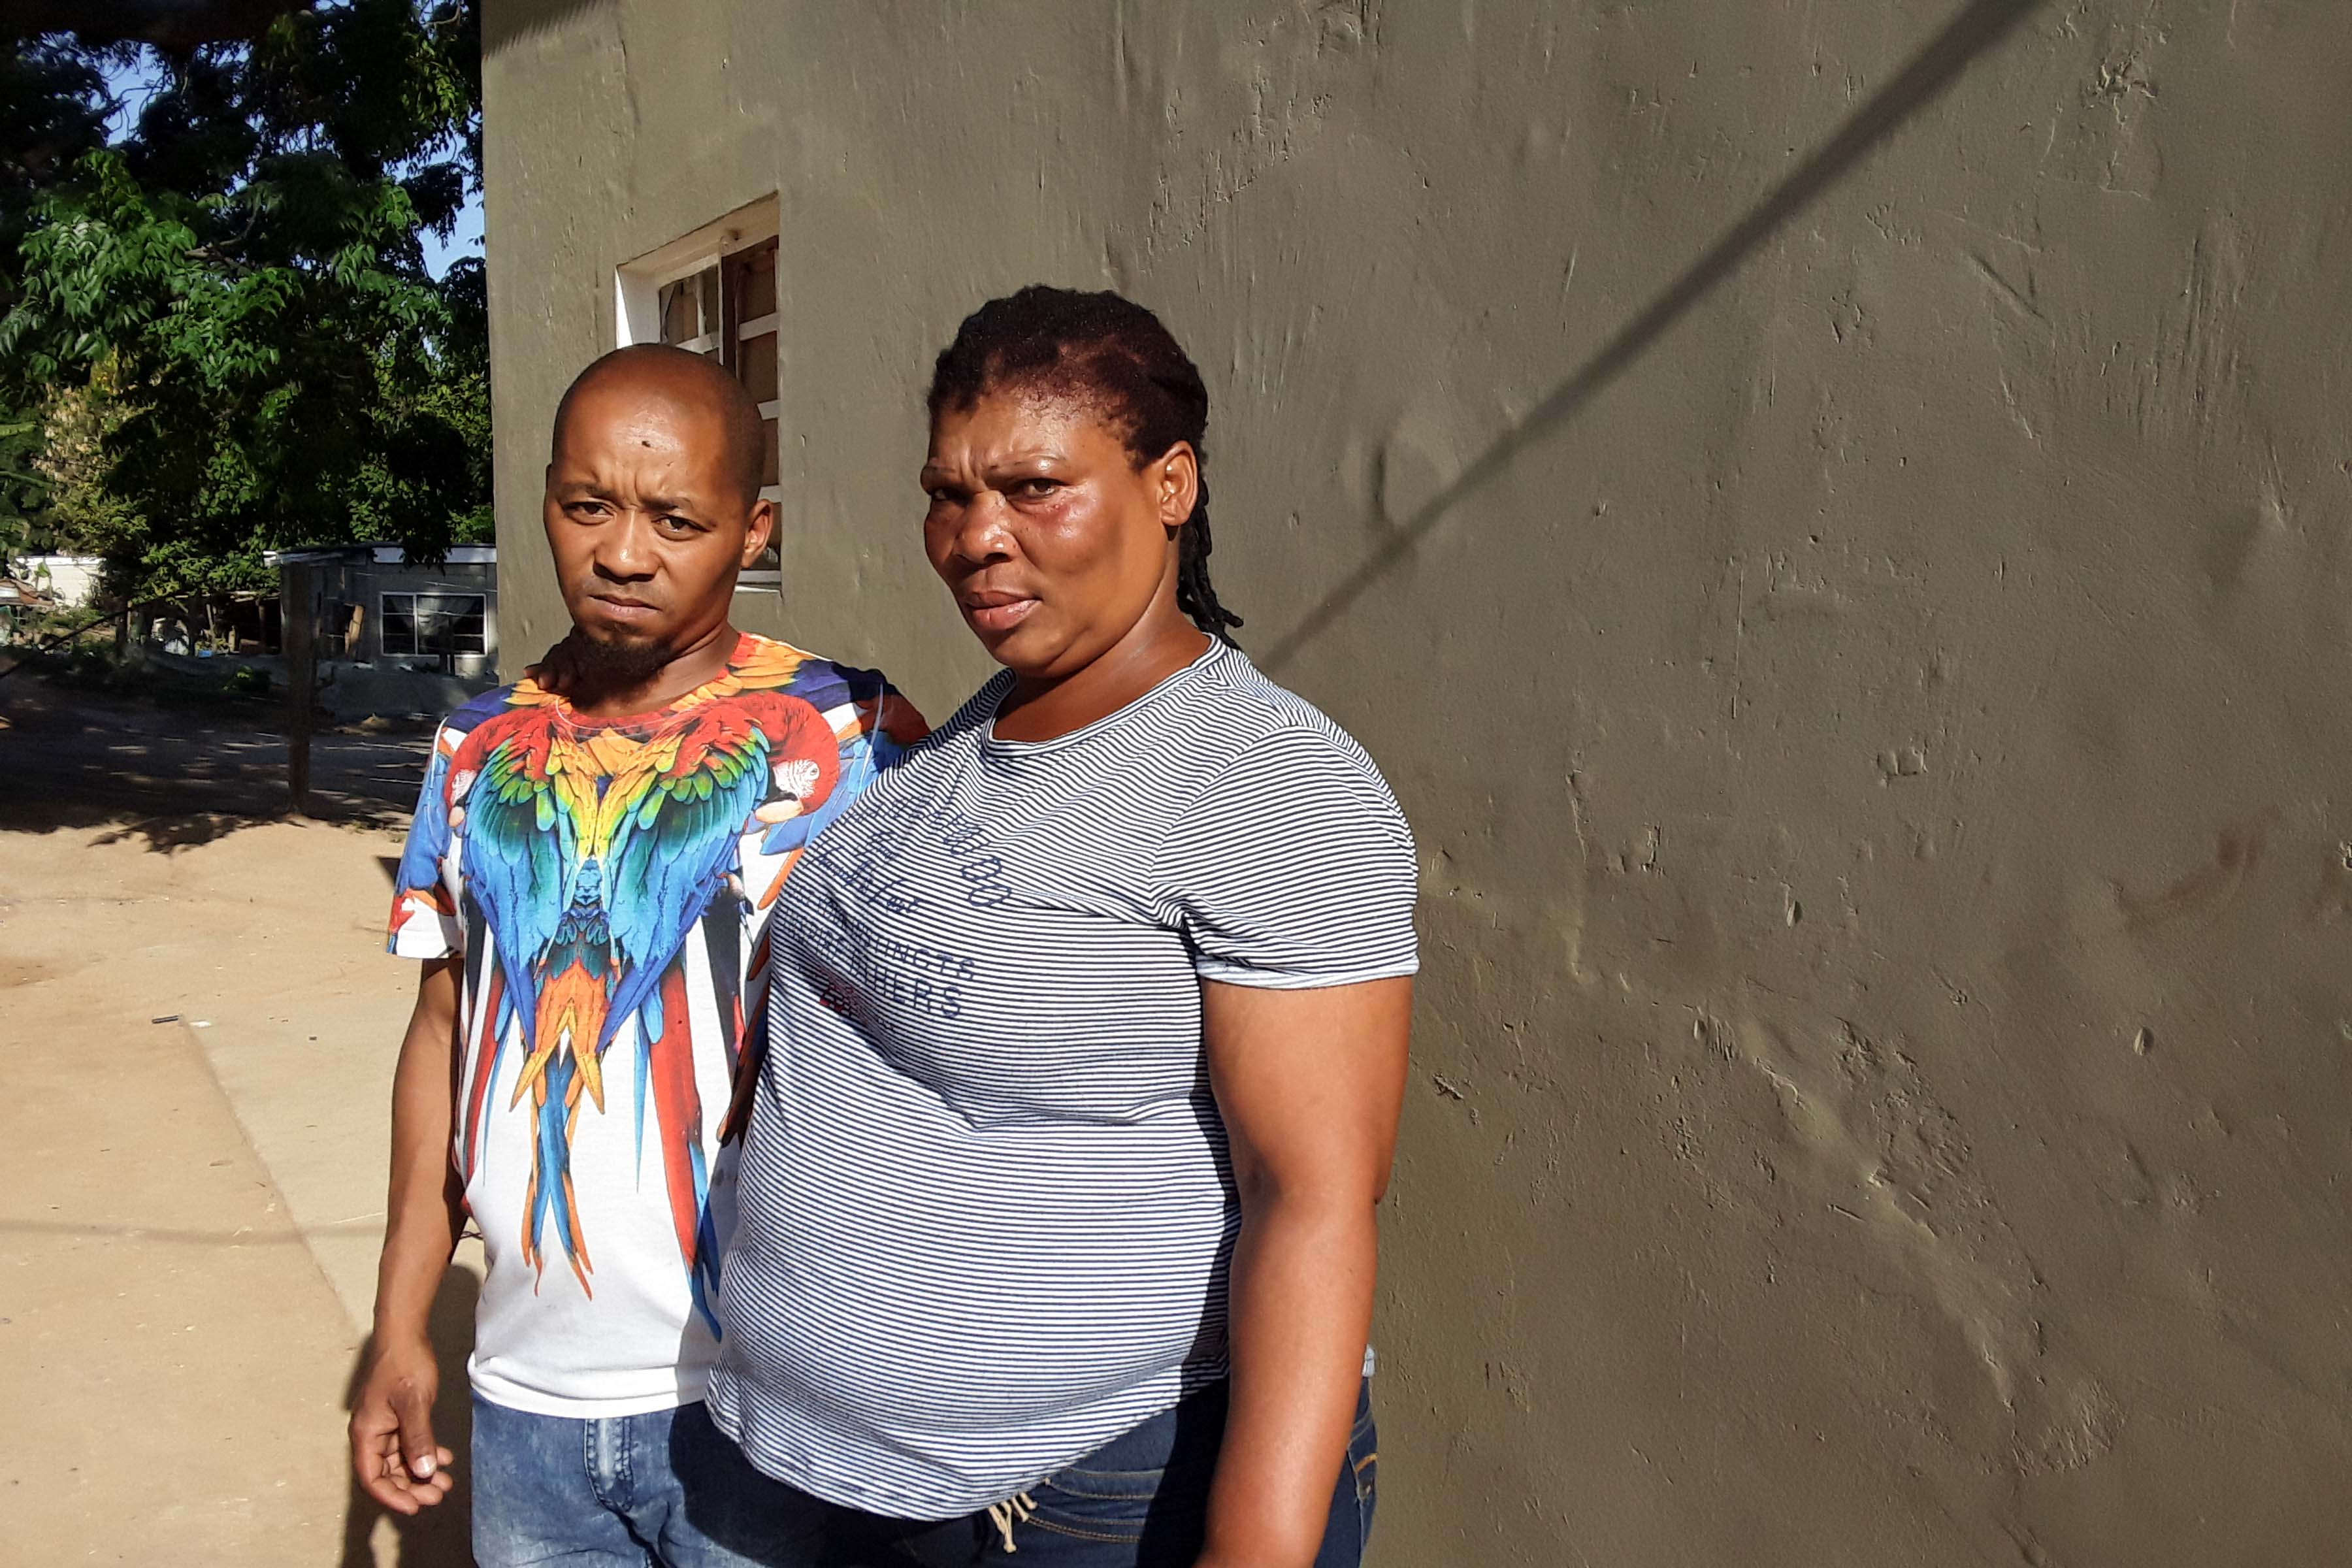 28 November 2019: Wayne Piedt and his partner Priscilla Dayi face eviction from this house, because Piedt was dismissed from his job.